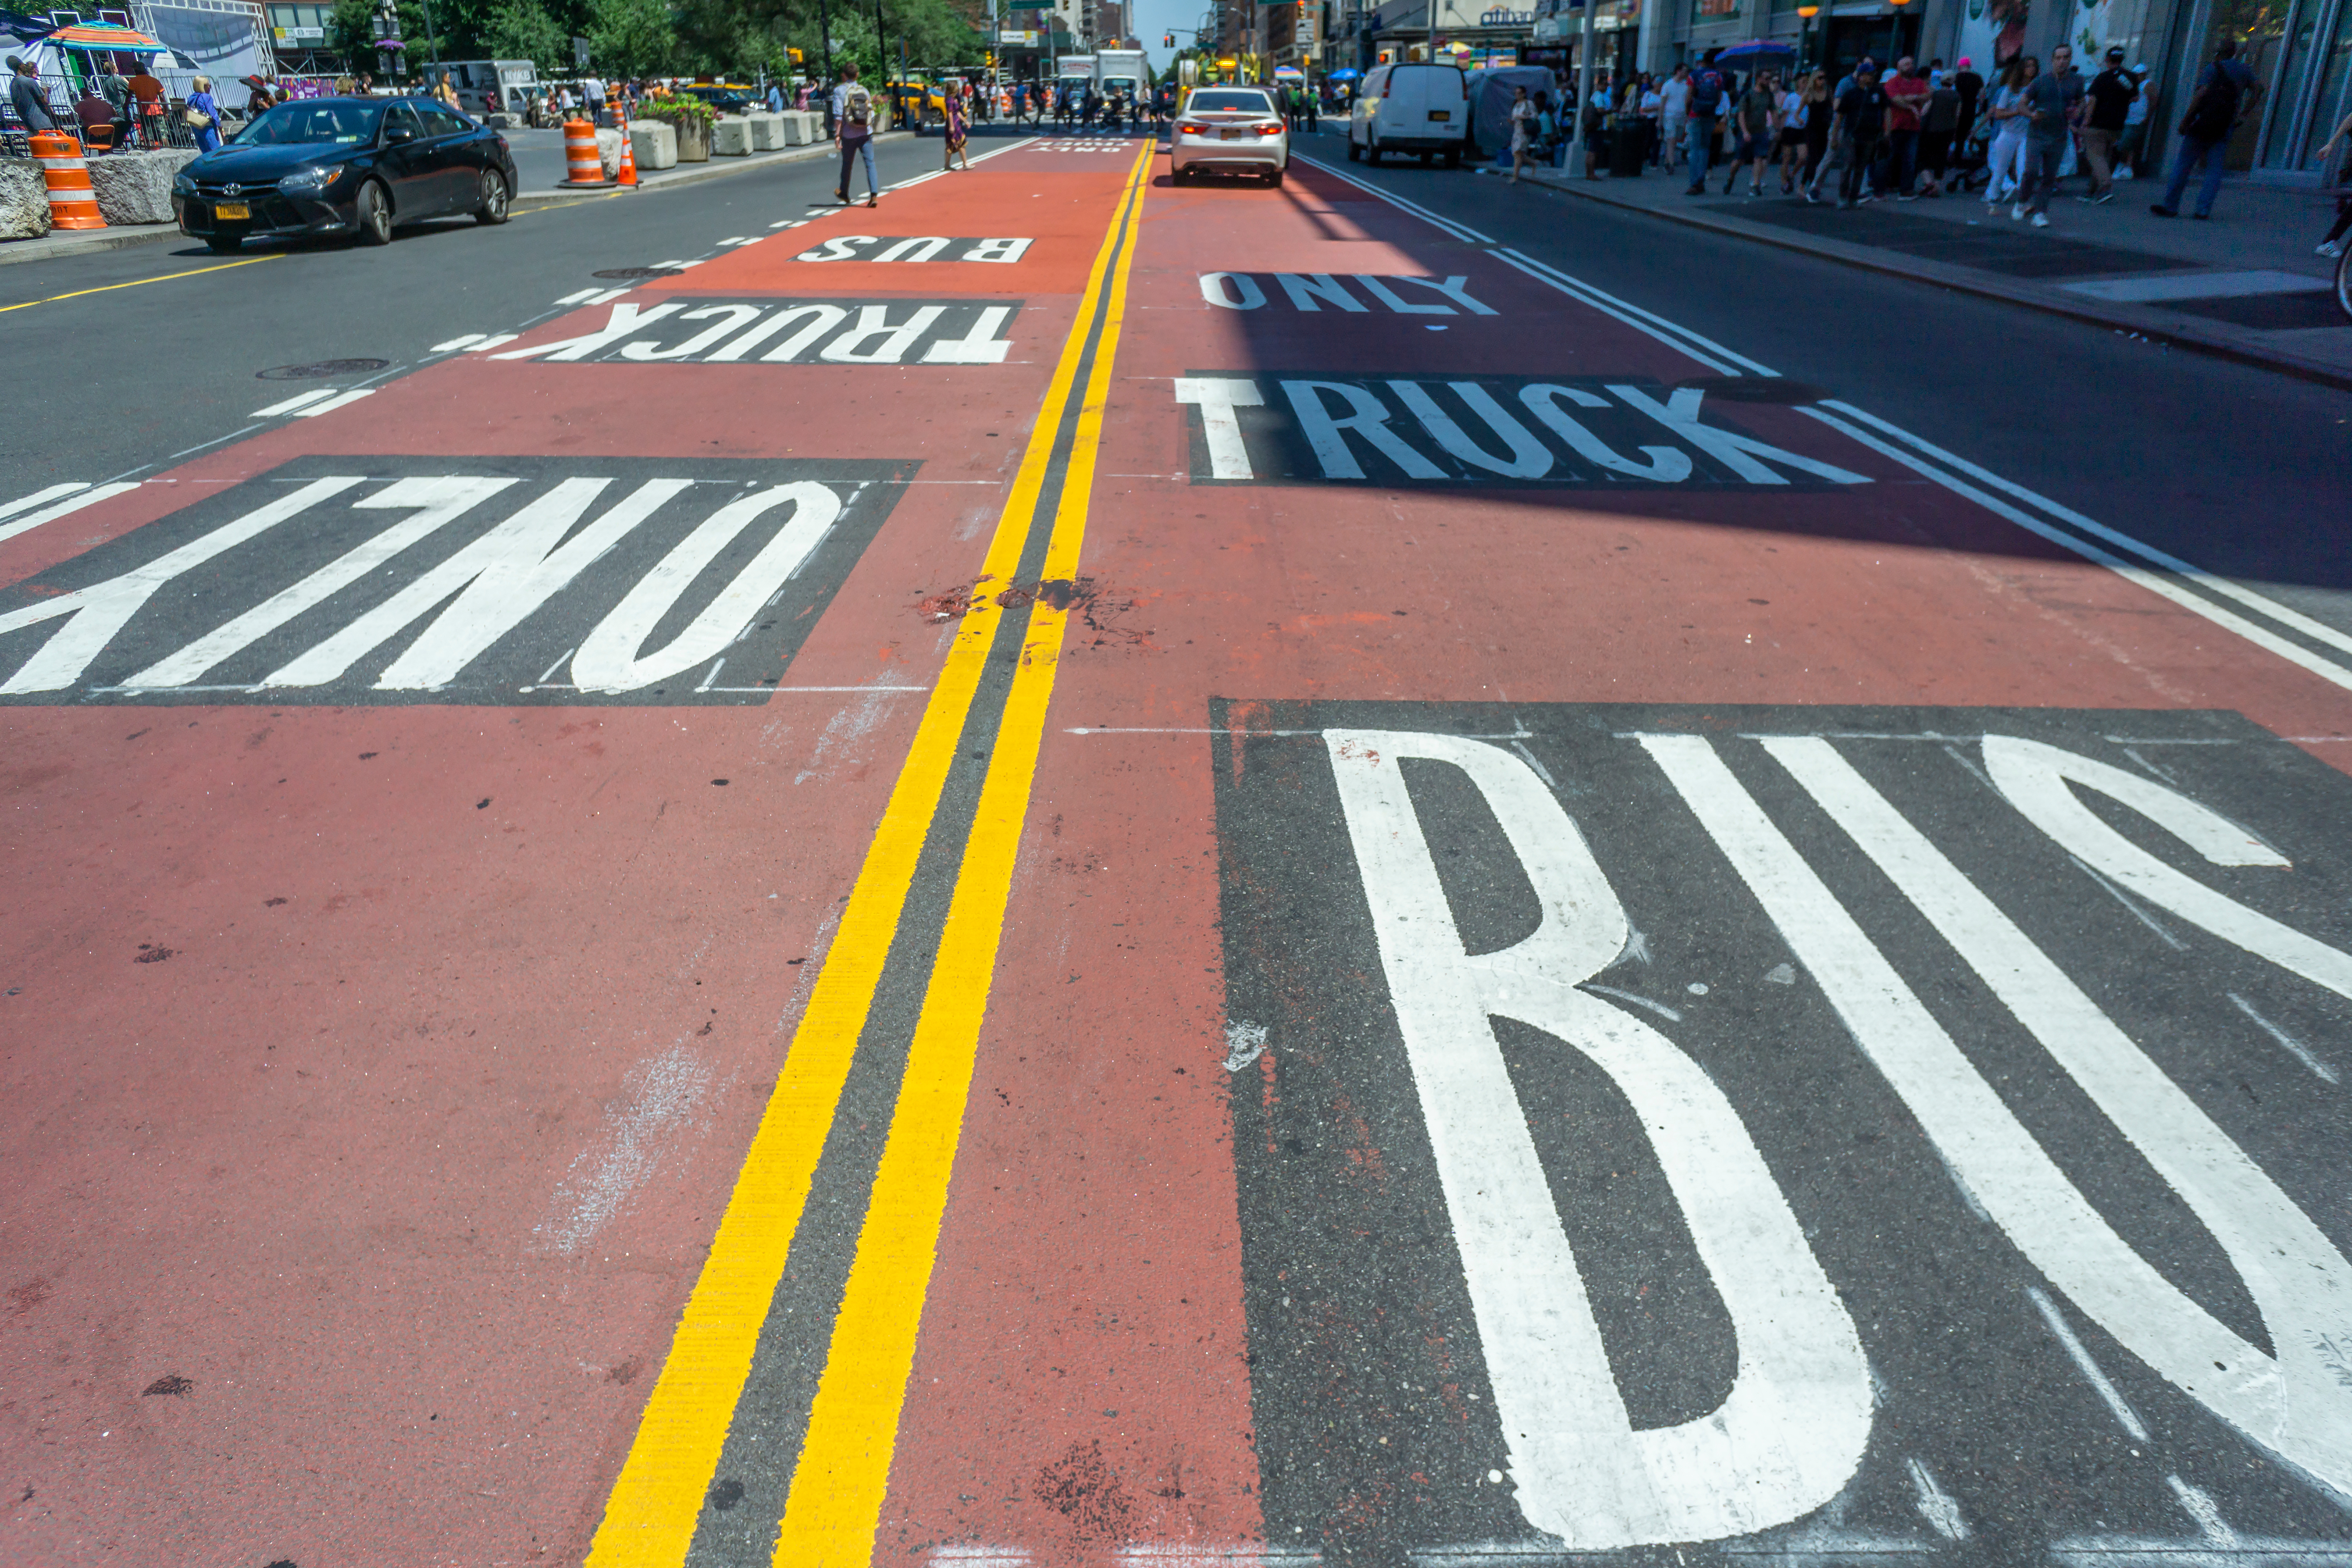 """A street is painted with a red bus lane that states """"Only Truck Bus."""""""